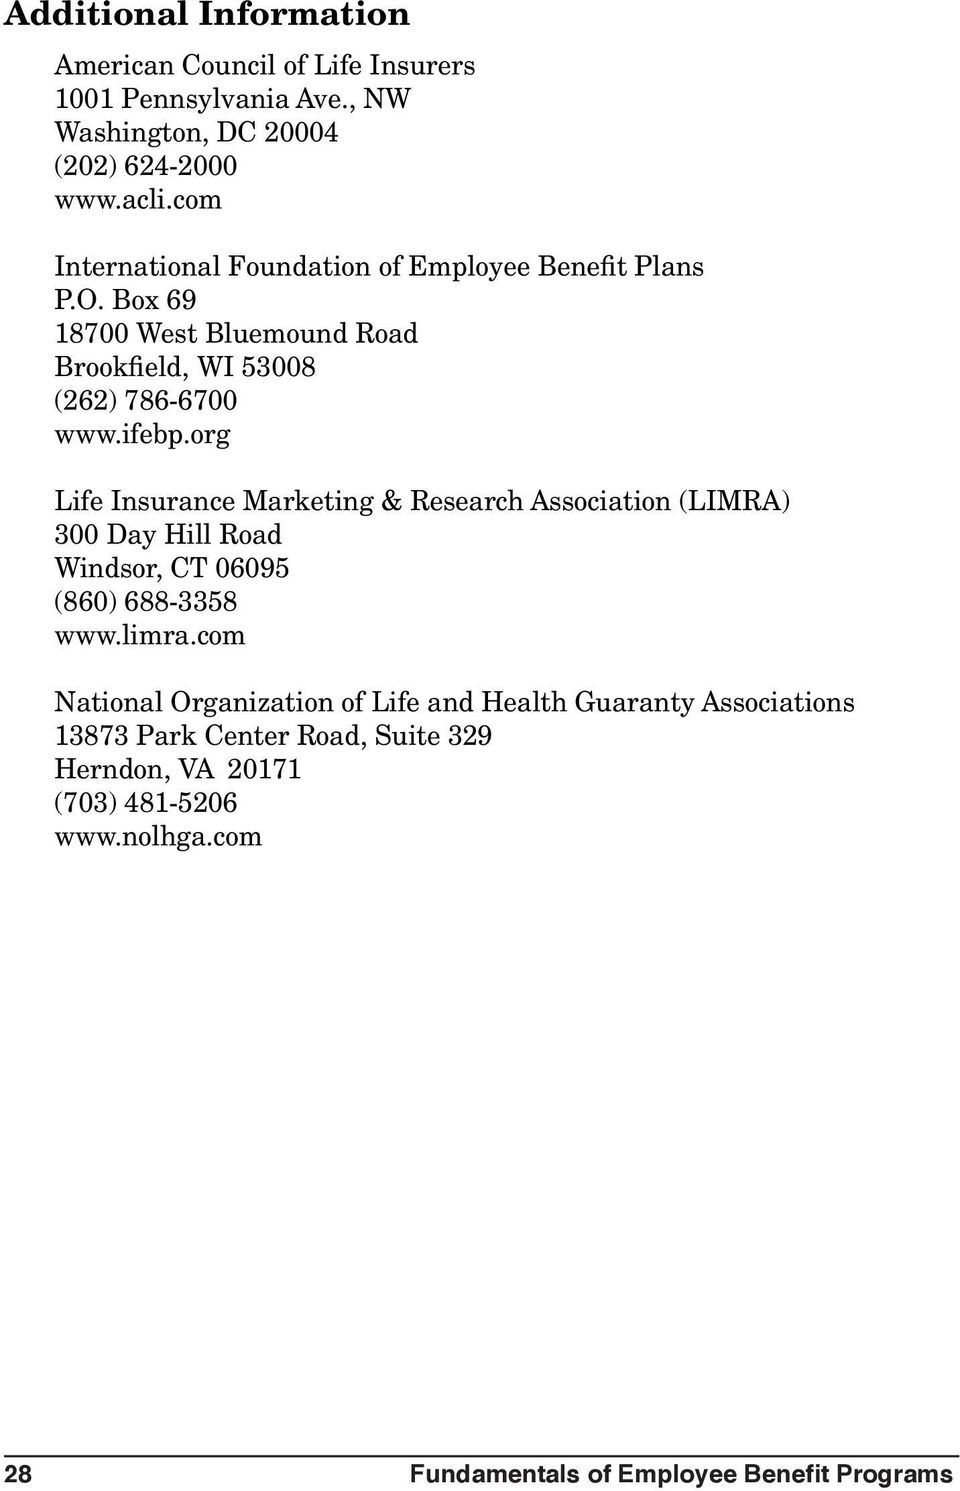 org Life Insurance Marketing & Research Association (LIMRA) 300 Day Hill Road Windsor, CT 06095 (860) 688-3358 www.limra.